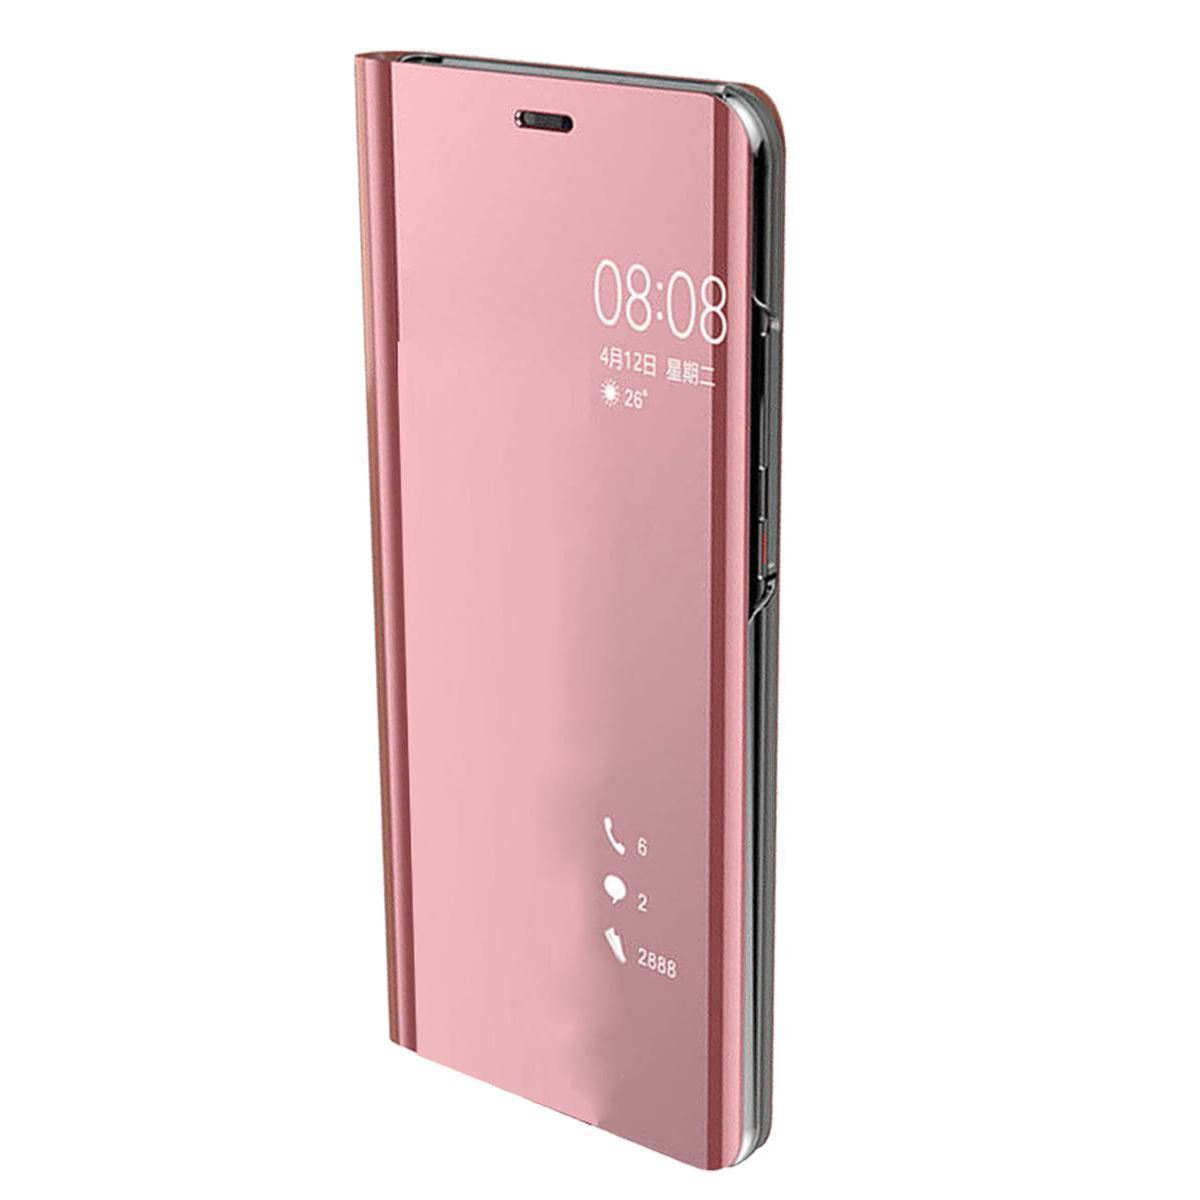 Huawei P Smart Case Smart View Mirror Flip Stand Cover - Rose Gold